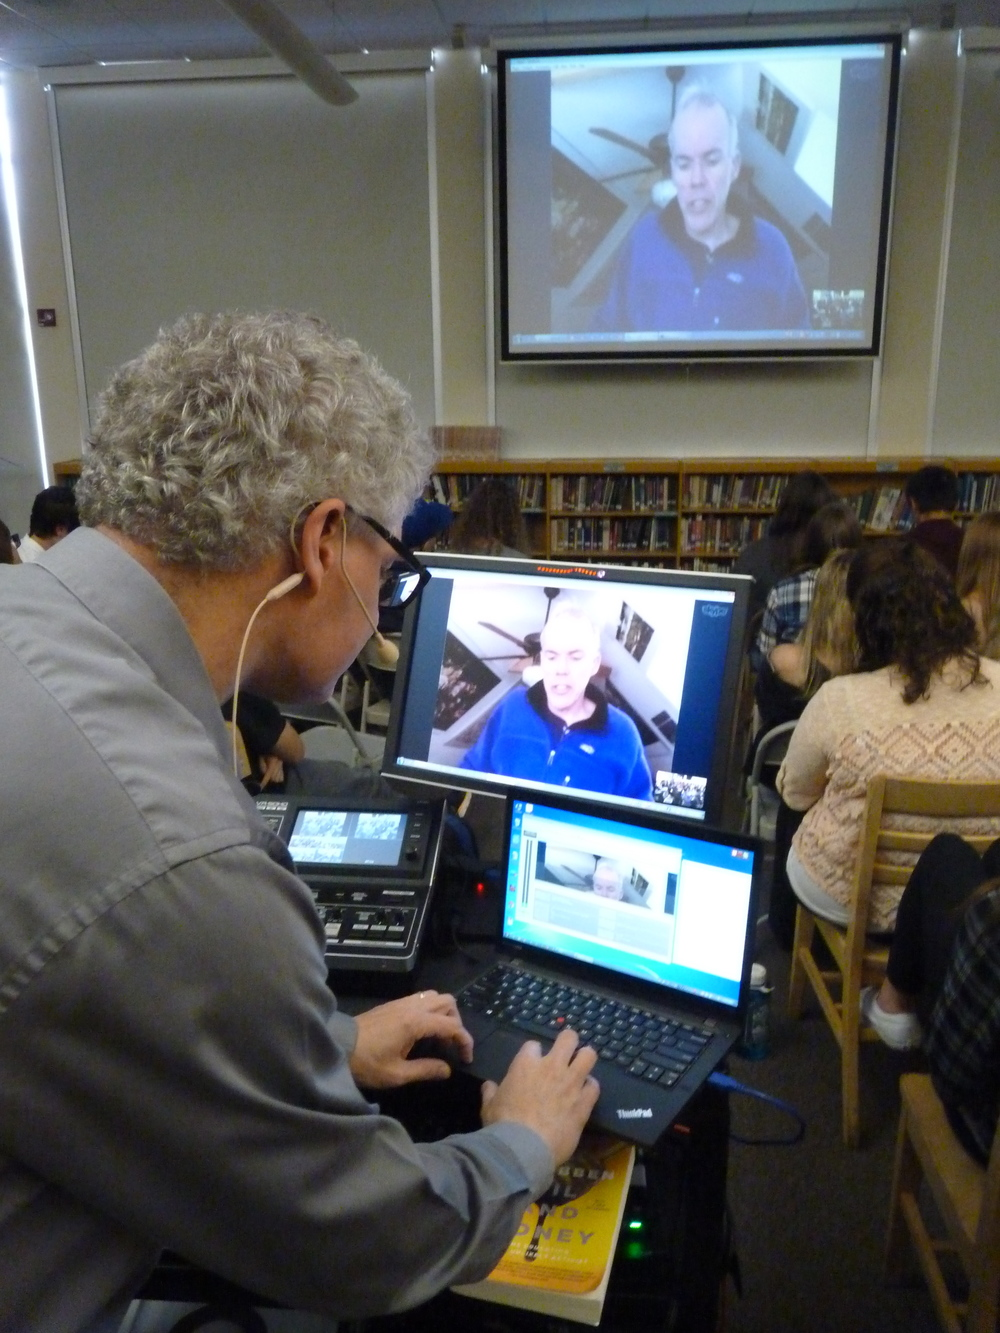 Bill McKibben, world renown environmental writer and founder of 350.org, skype chats with our students because a parent offered to provide the technology support to make it happen!